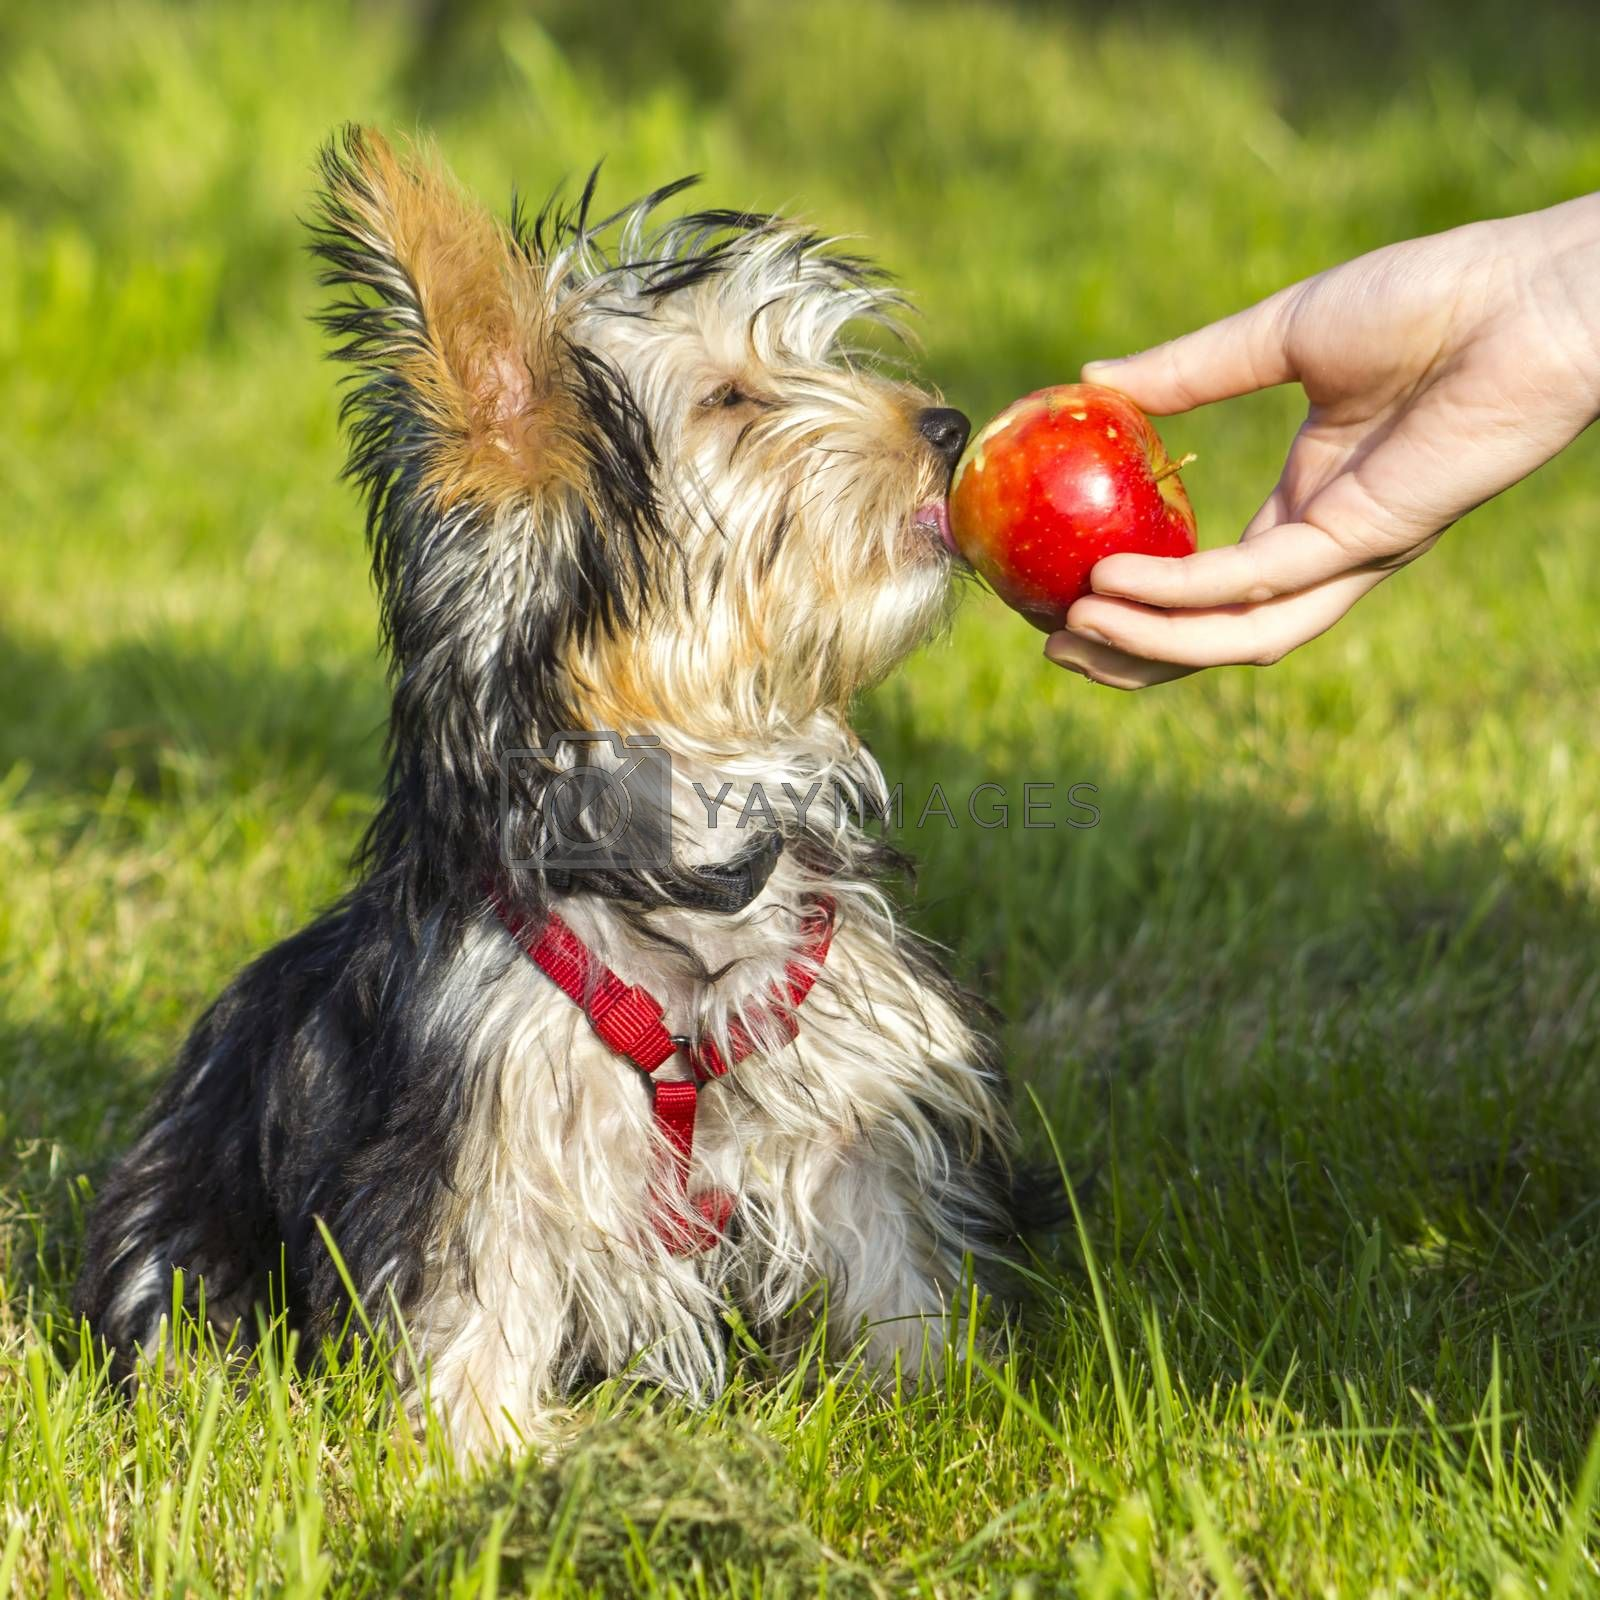 yorkshire terrier is eating apple